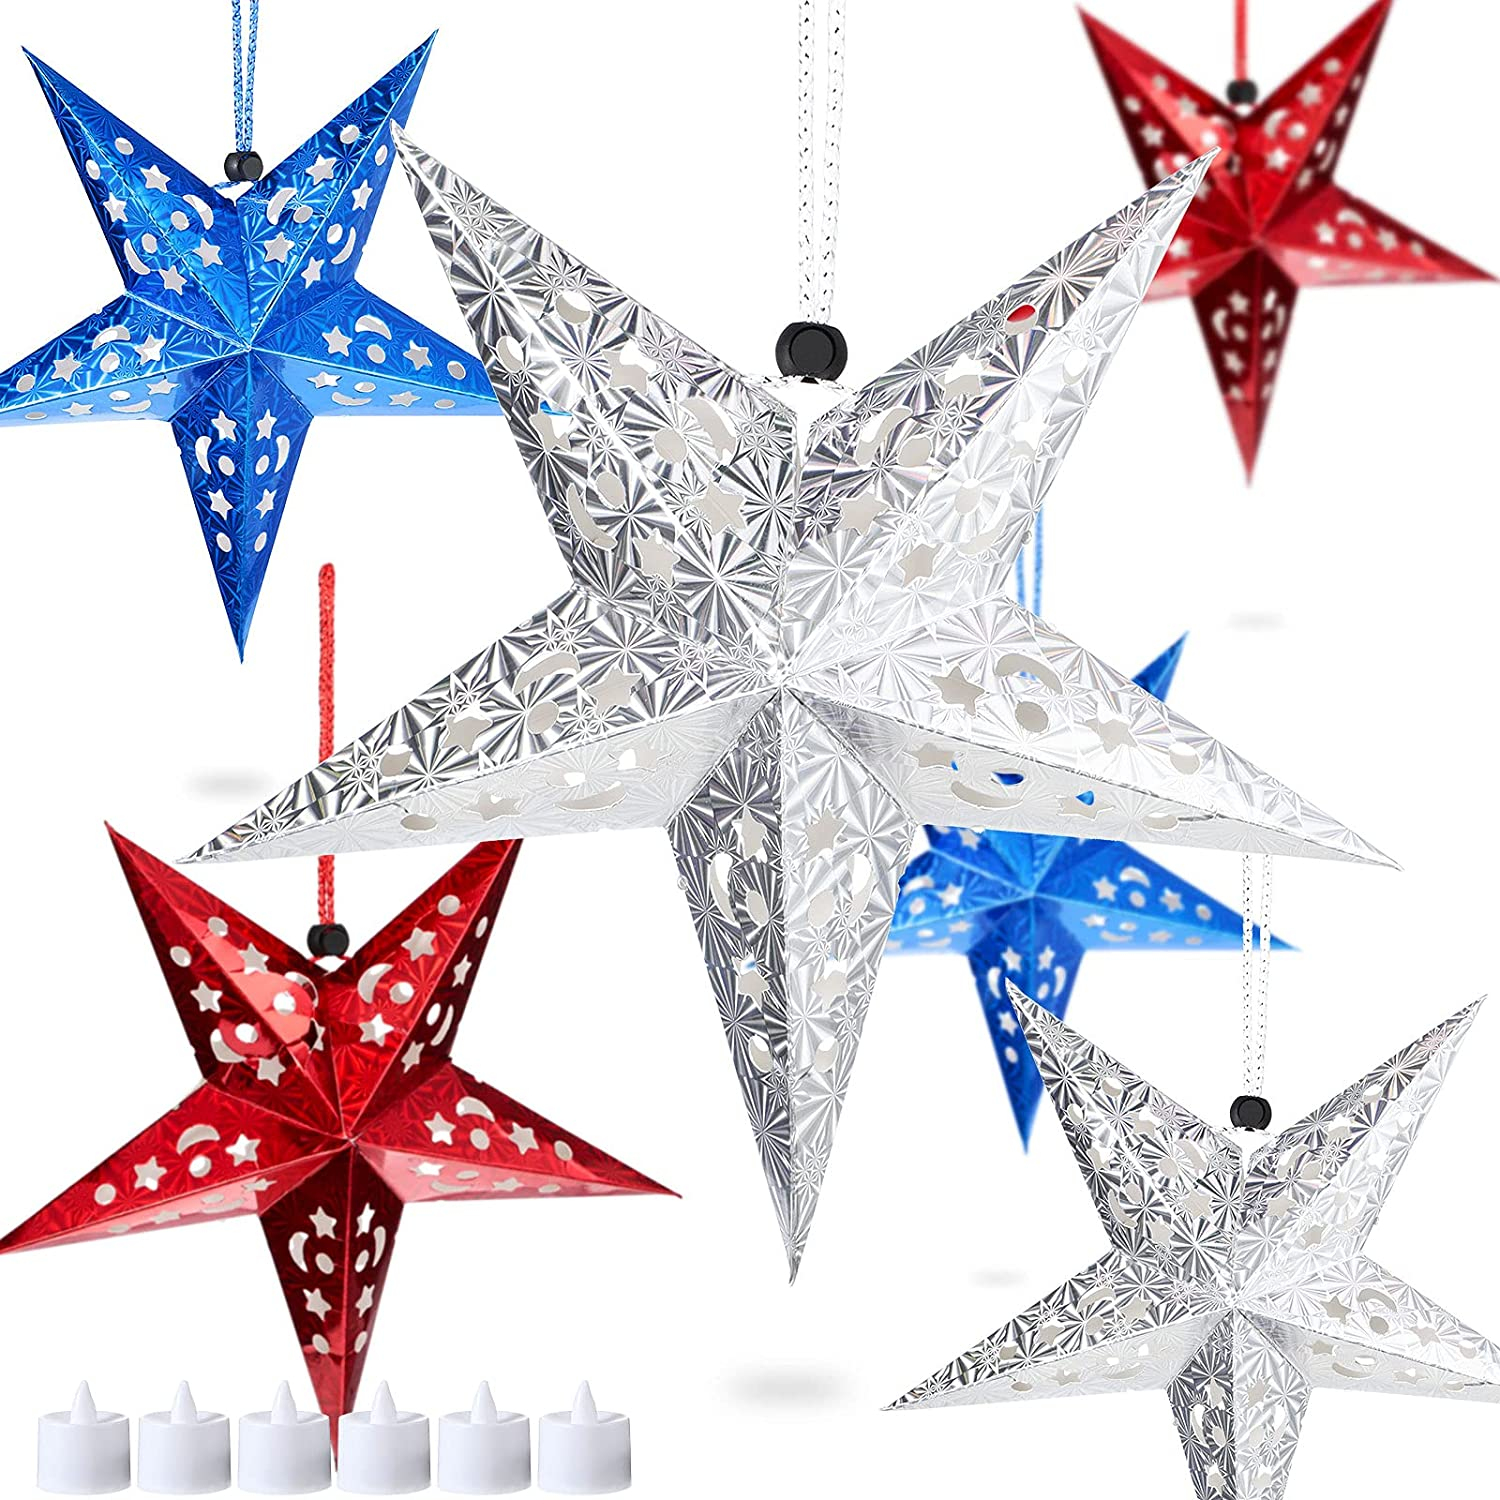 6 Pieces Independence Day Paper Star Shaped Lantern Paper Star Lampshade with LED Lights 4th of July Hanging Star Decorations Patriotic Hanging Ornaments for Holiday Wedding Birthday Indoor Outdoor